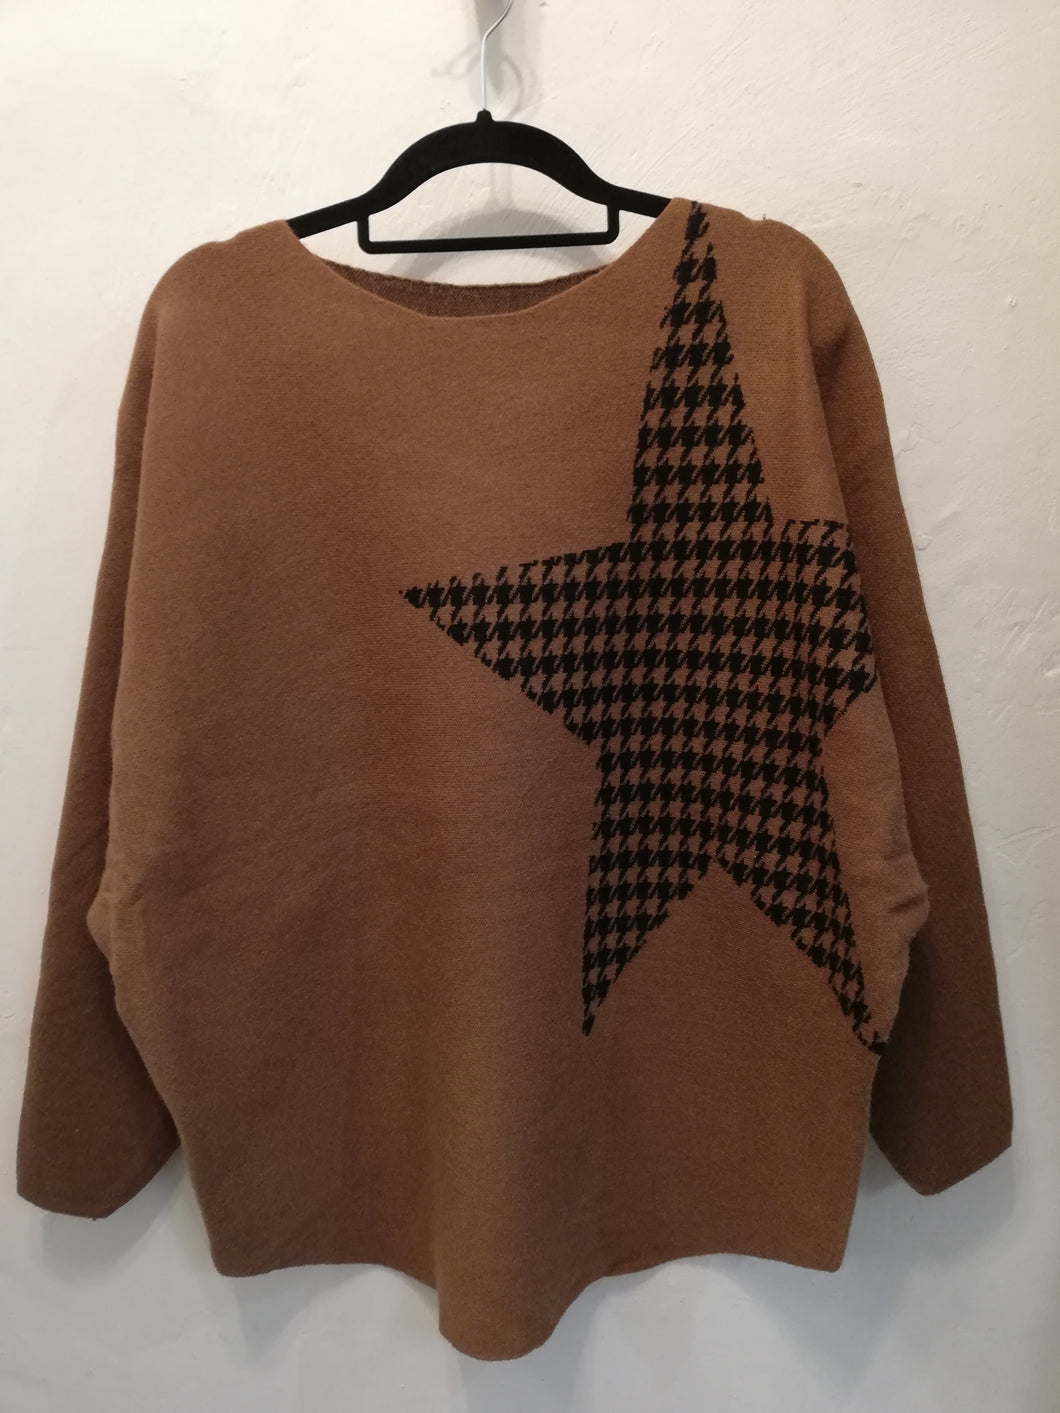 Star Jumper one size 10 - 16